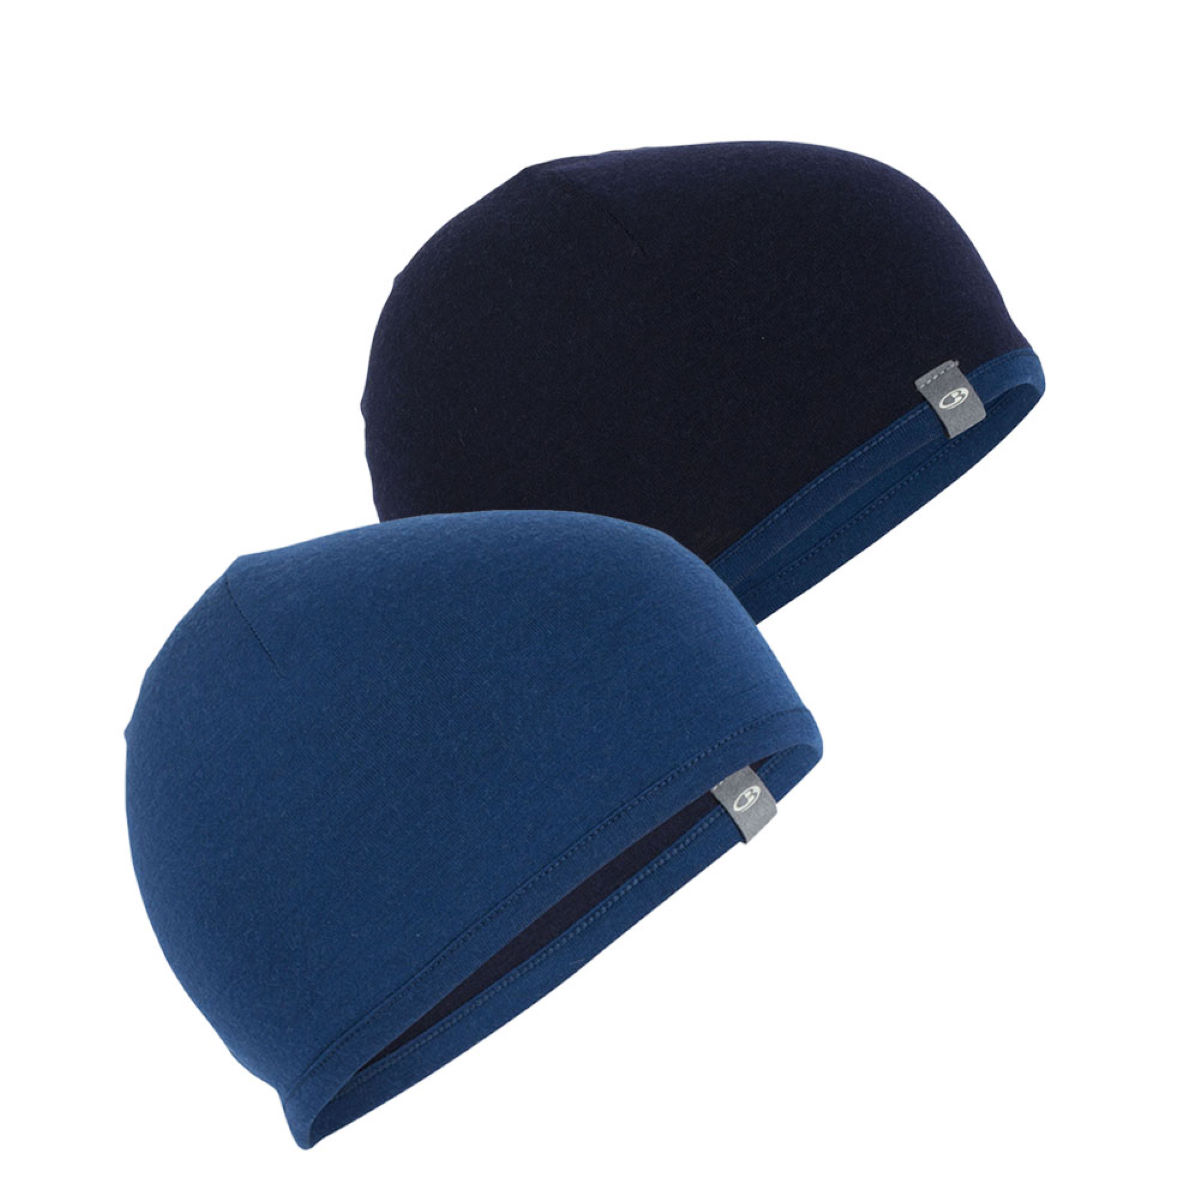 Icebreaker Adult Pocket Merino Hat   Beanies